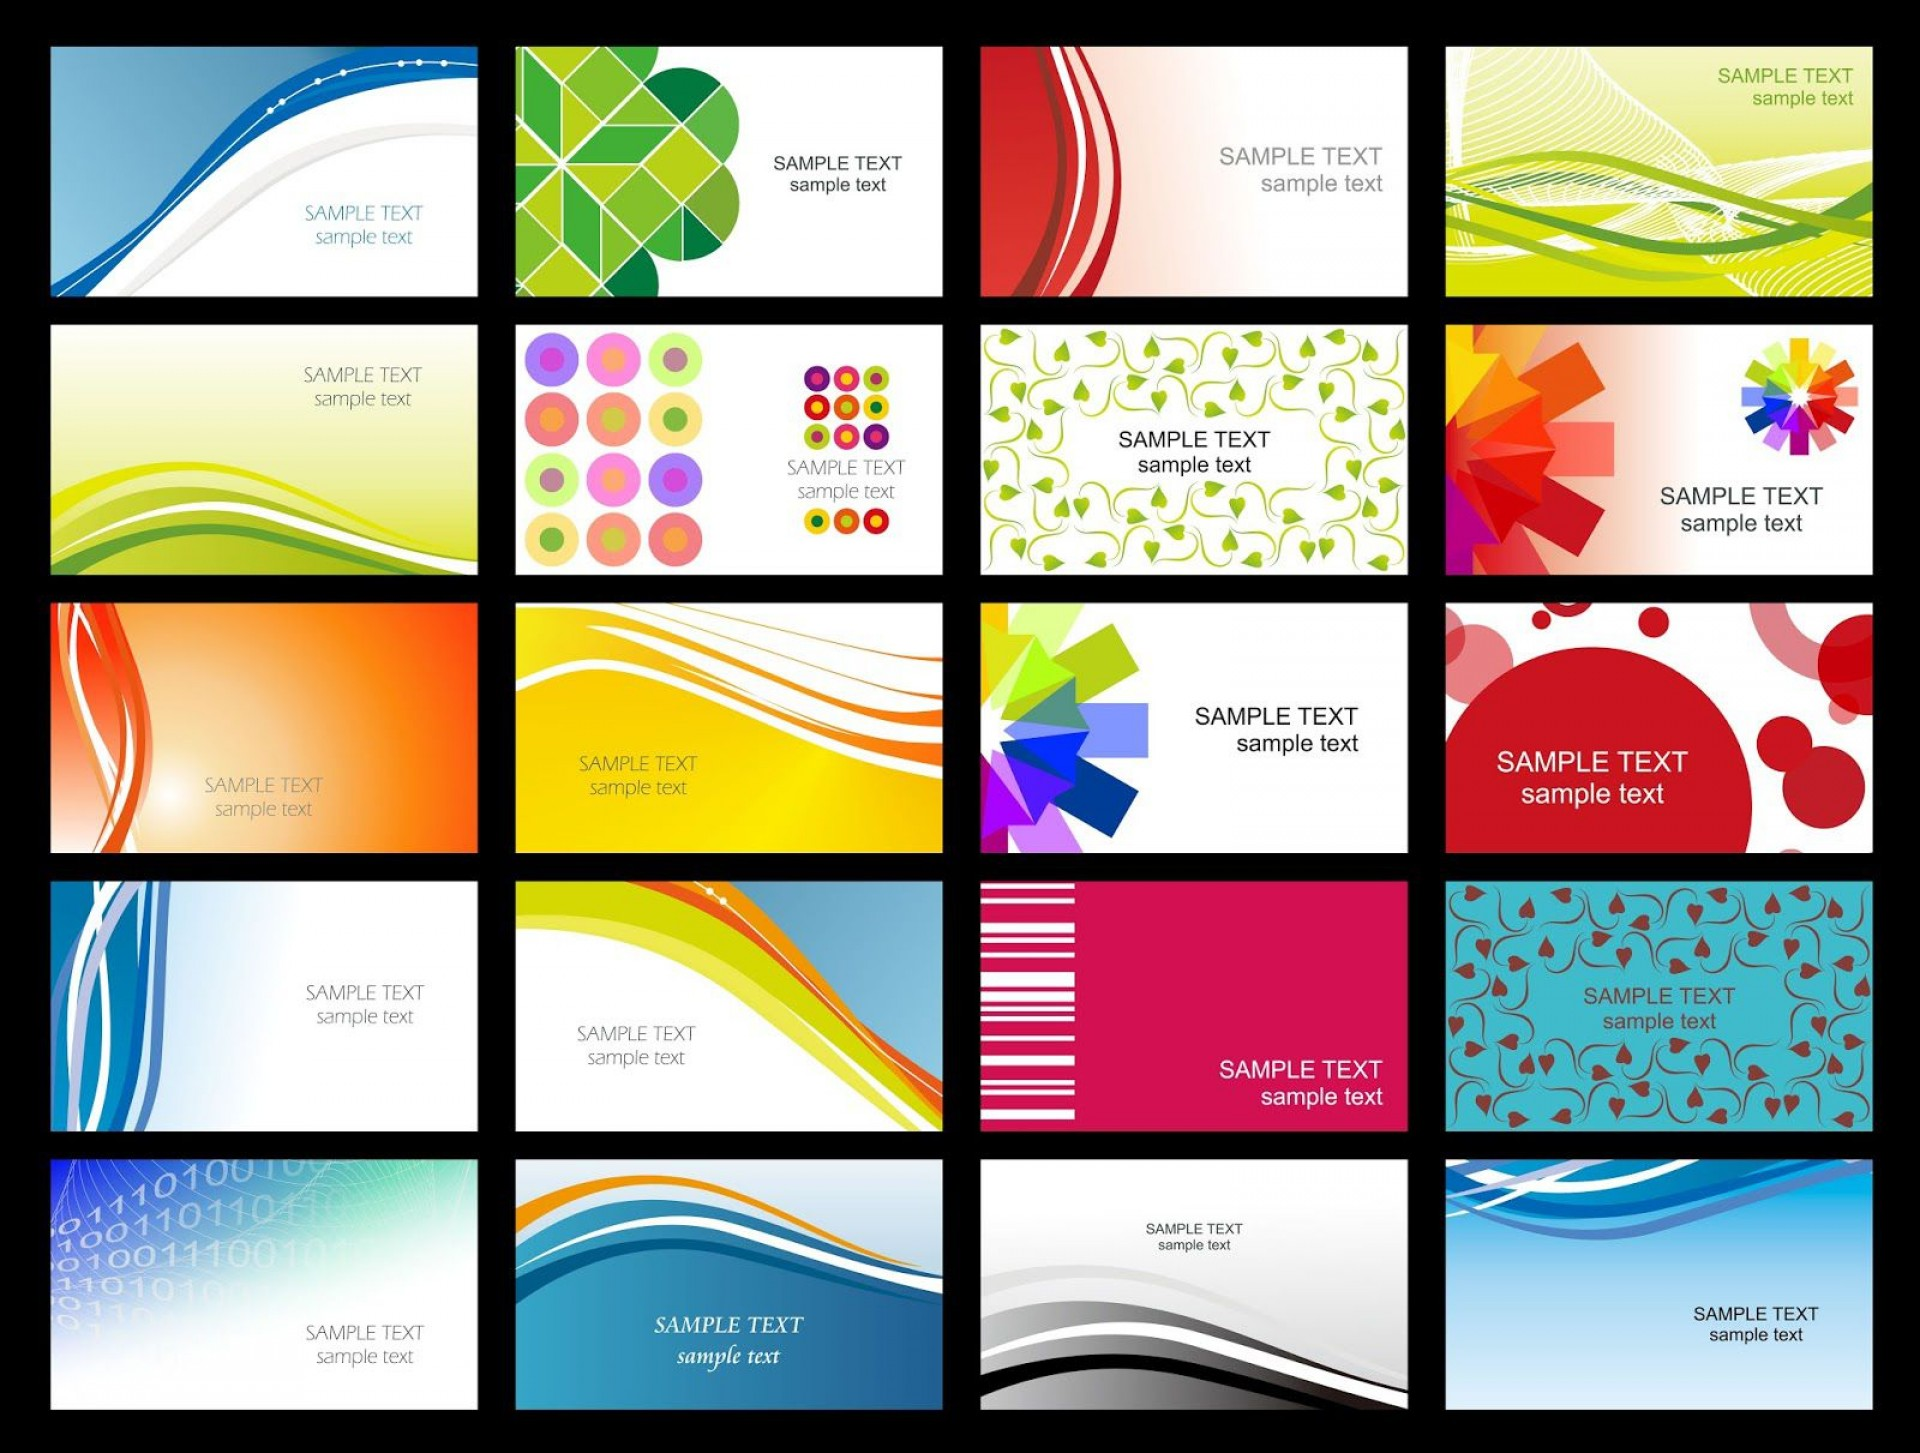 008 Breathtaking Free Download Busines Card Template Photo  Templates Blank Microsoft Word1920